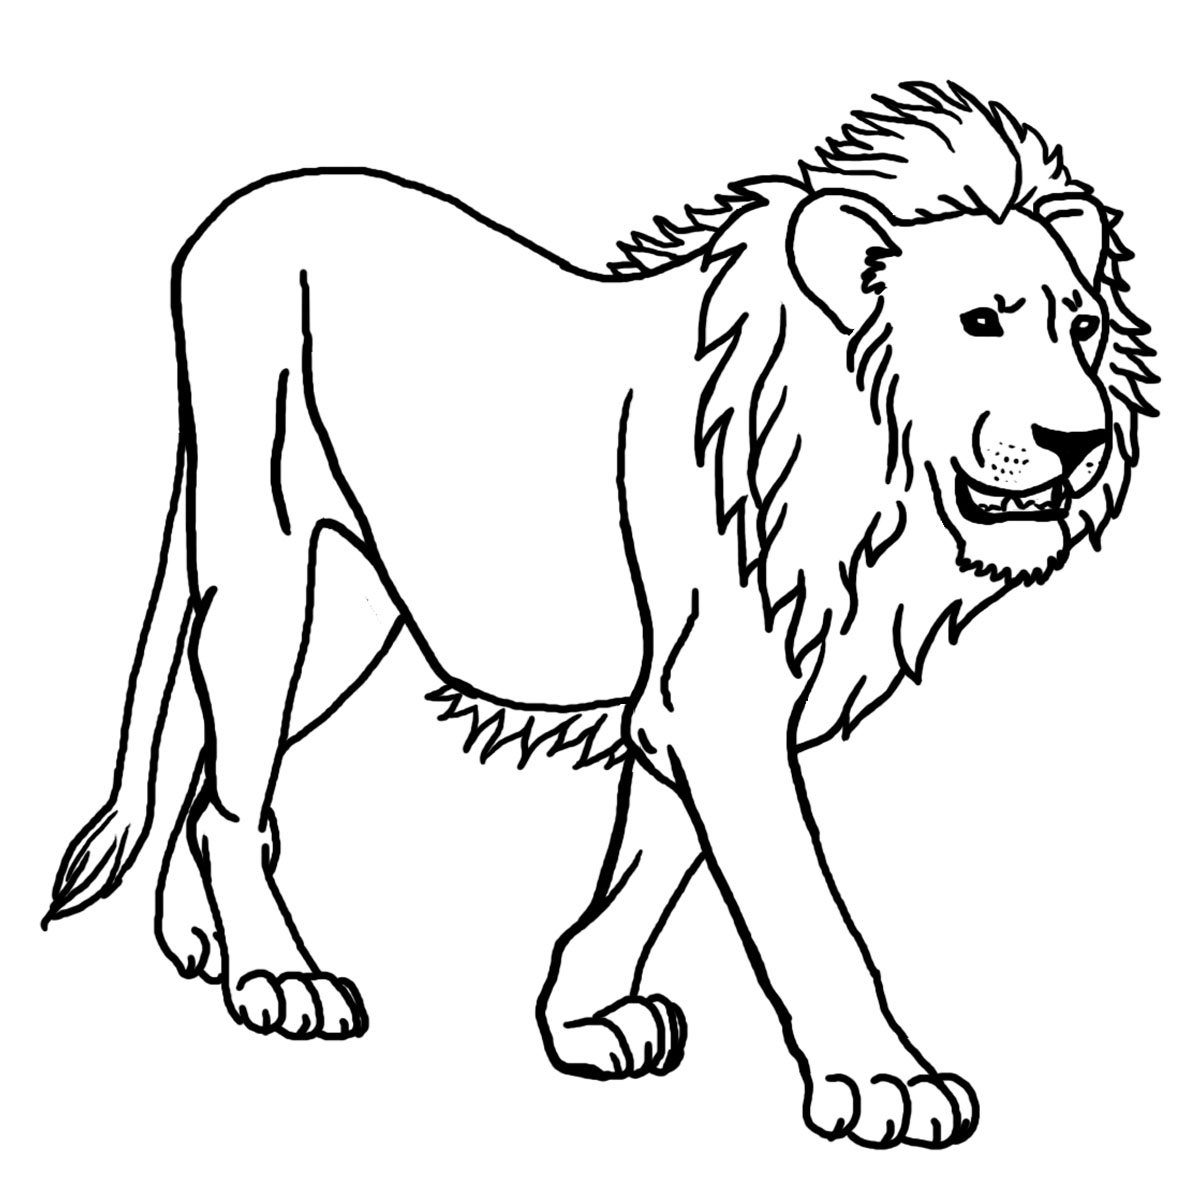 lion coloring page,printable,coloring pages